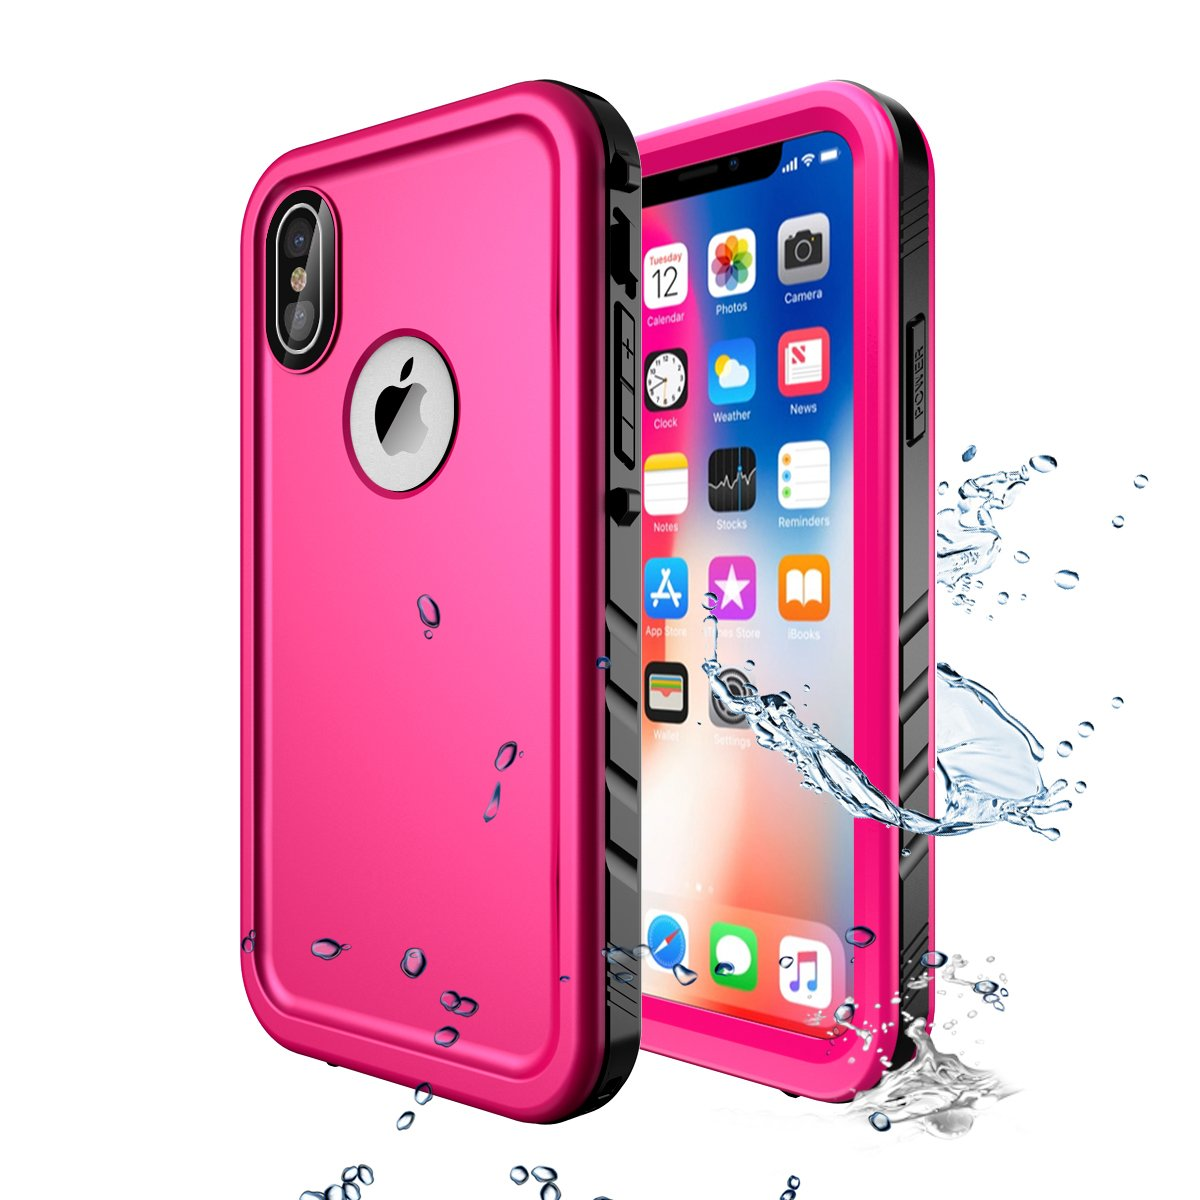 iPhone X Waterproof Case,Wireless Charging Support iPhone X Waterproof Shockproof Full-body Rugged Cover Case with Built-in Screen Protector for Apple iPhone X (Pink)